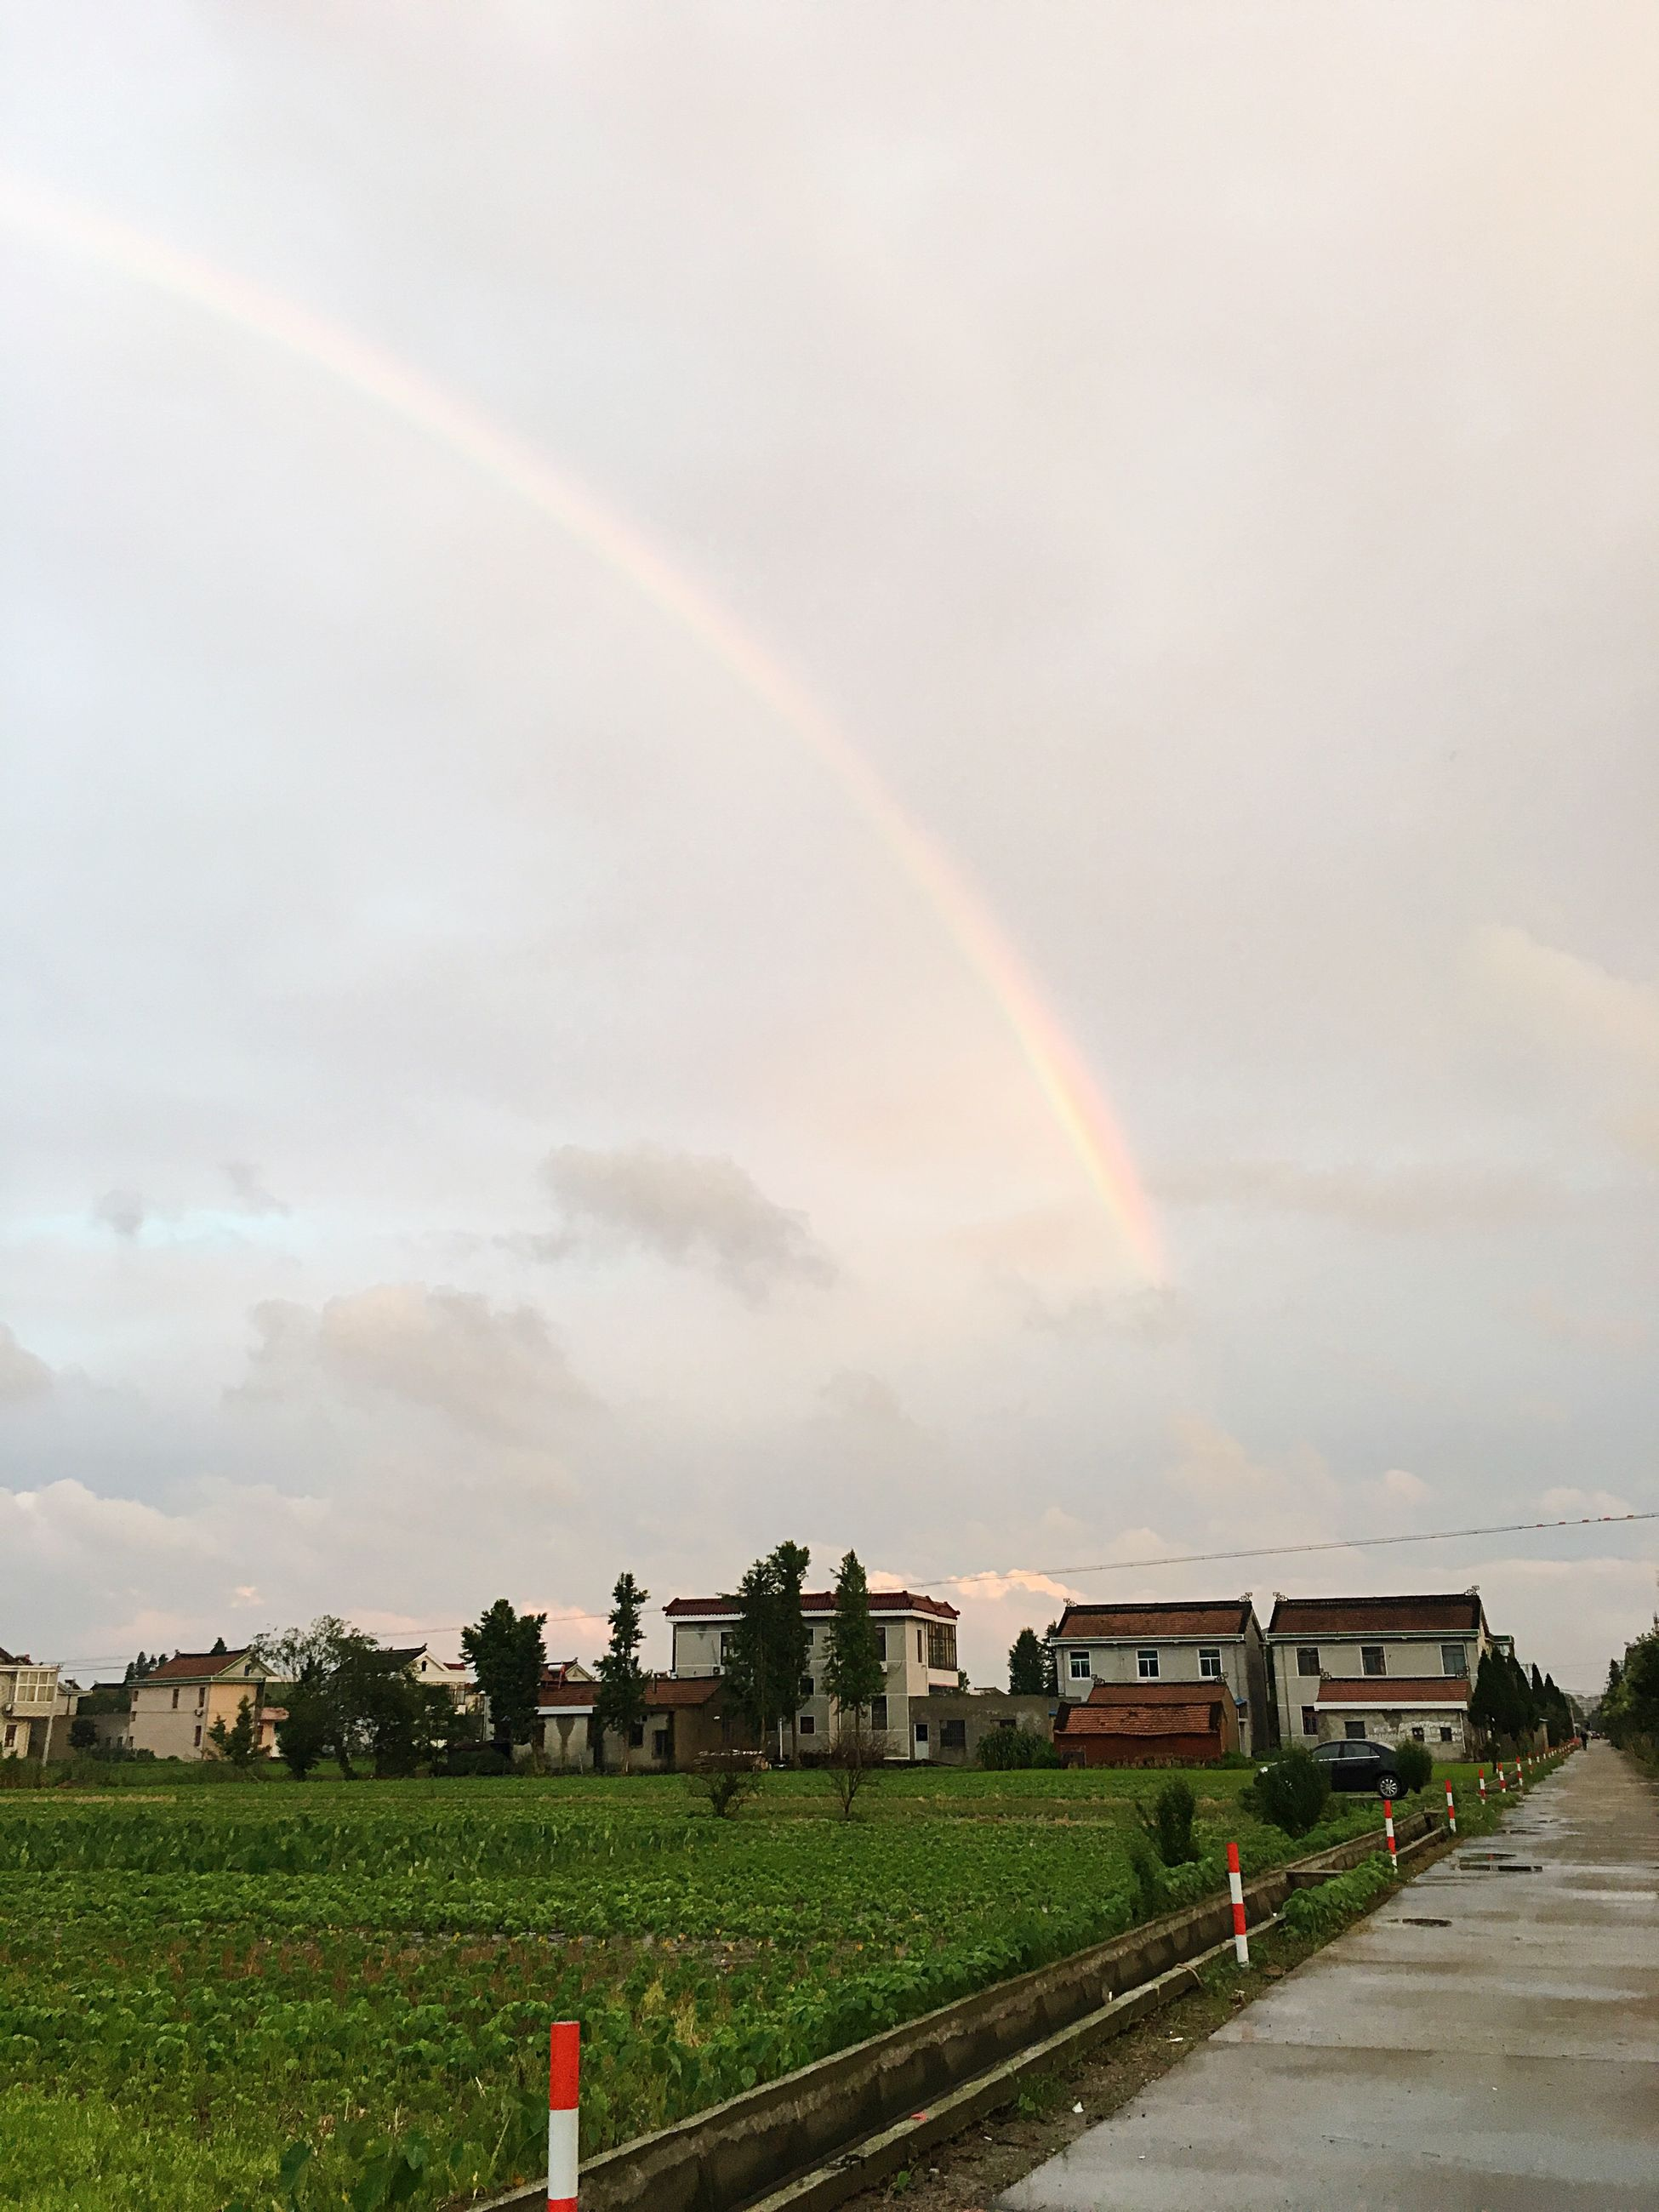 sky, building exterior, architecture, rainbow, built structure, grass, cloud - sky, landscape, field, house, cloudy, multi colored, nature, cloud, beauty in nature, tree, scenics, rural scene, green color, weather